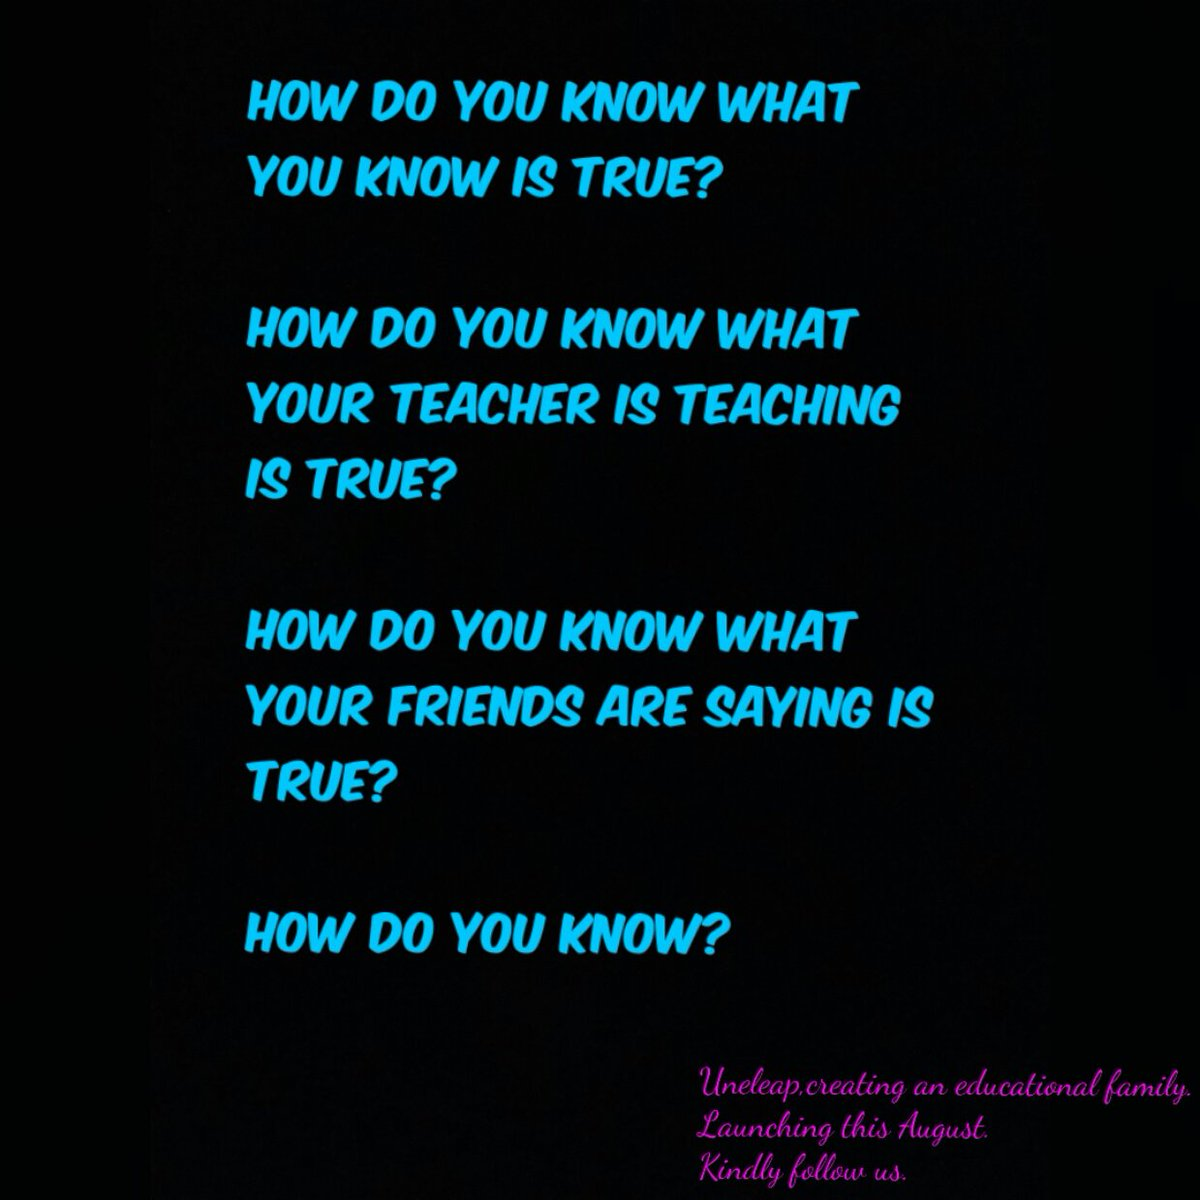 How do you know?   #uneleap #weekend #SaturdayMotivation #download #launching #followme #NBAAfricaGame #Howdo #family #student #Education.<br>http://pic.twitter.com/CG3Q5WN8bH